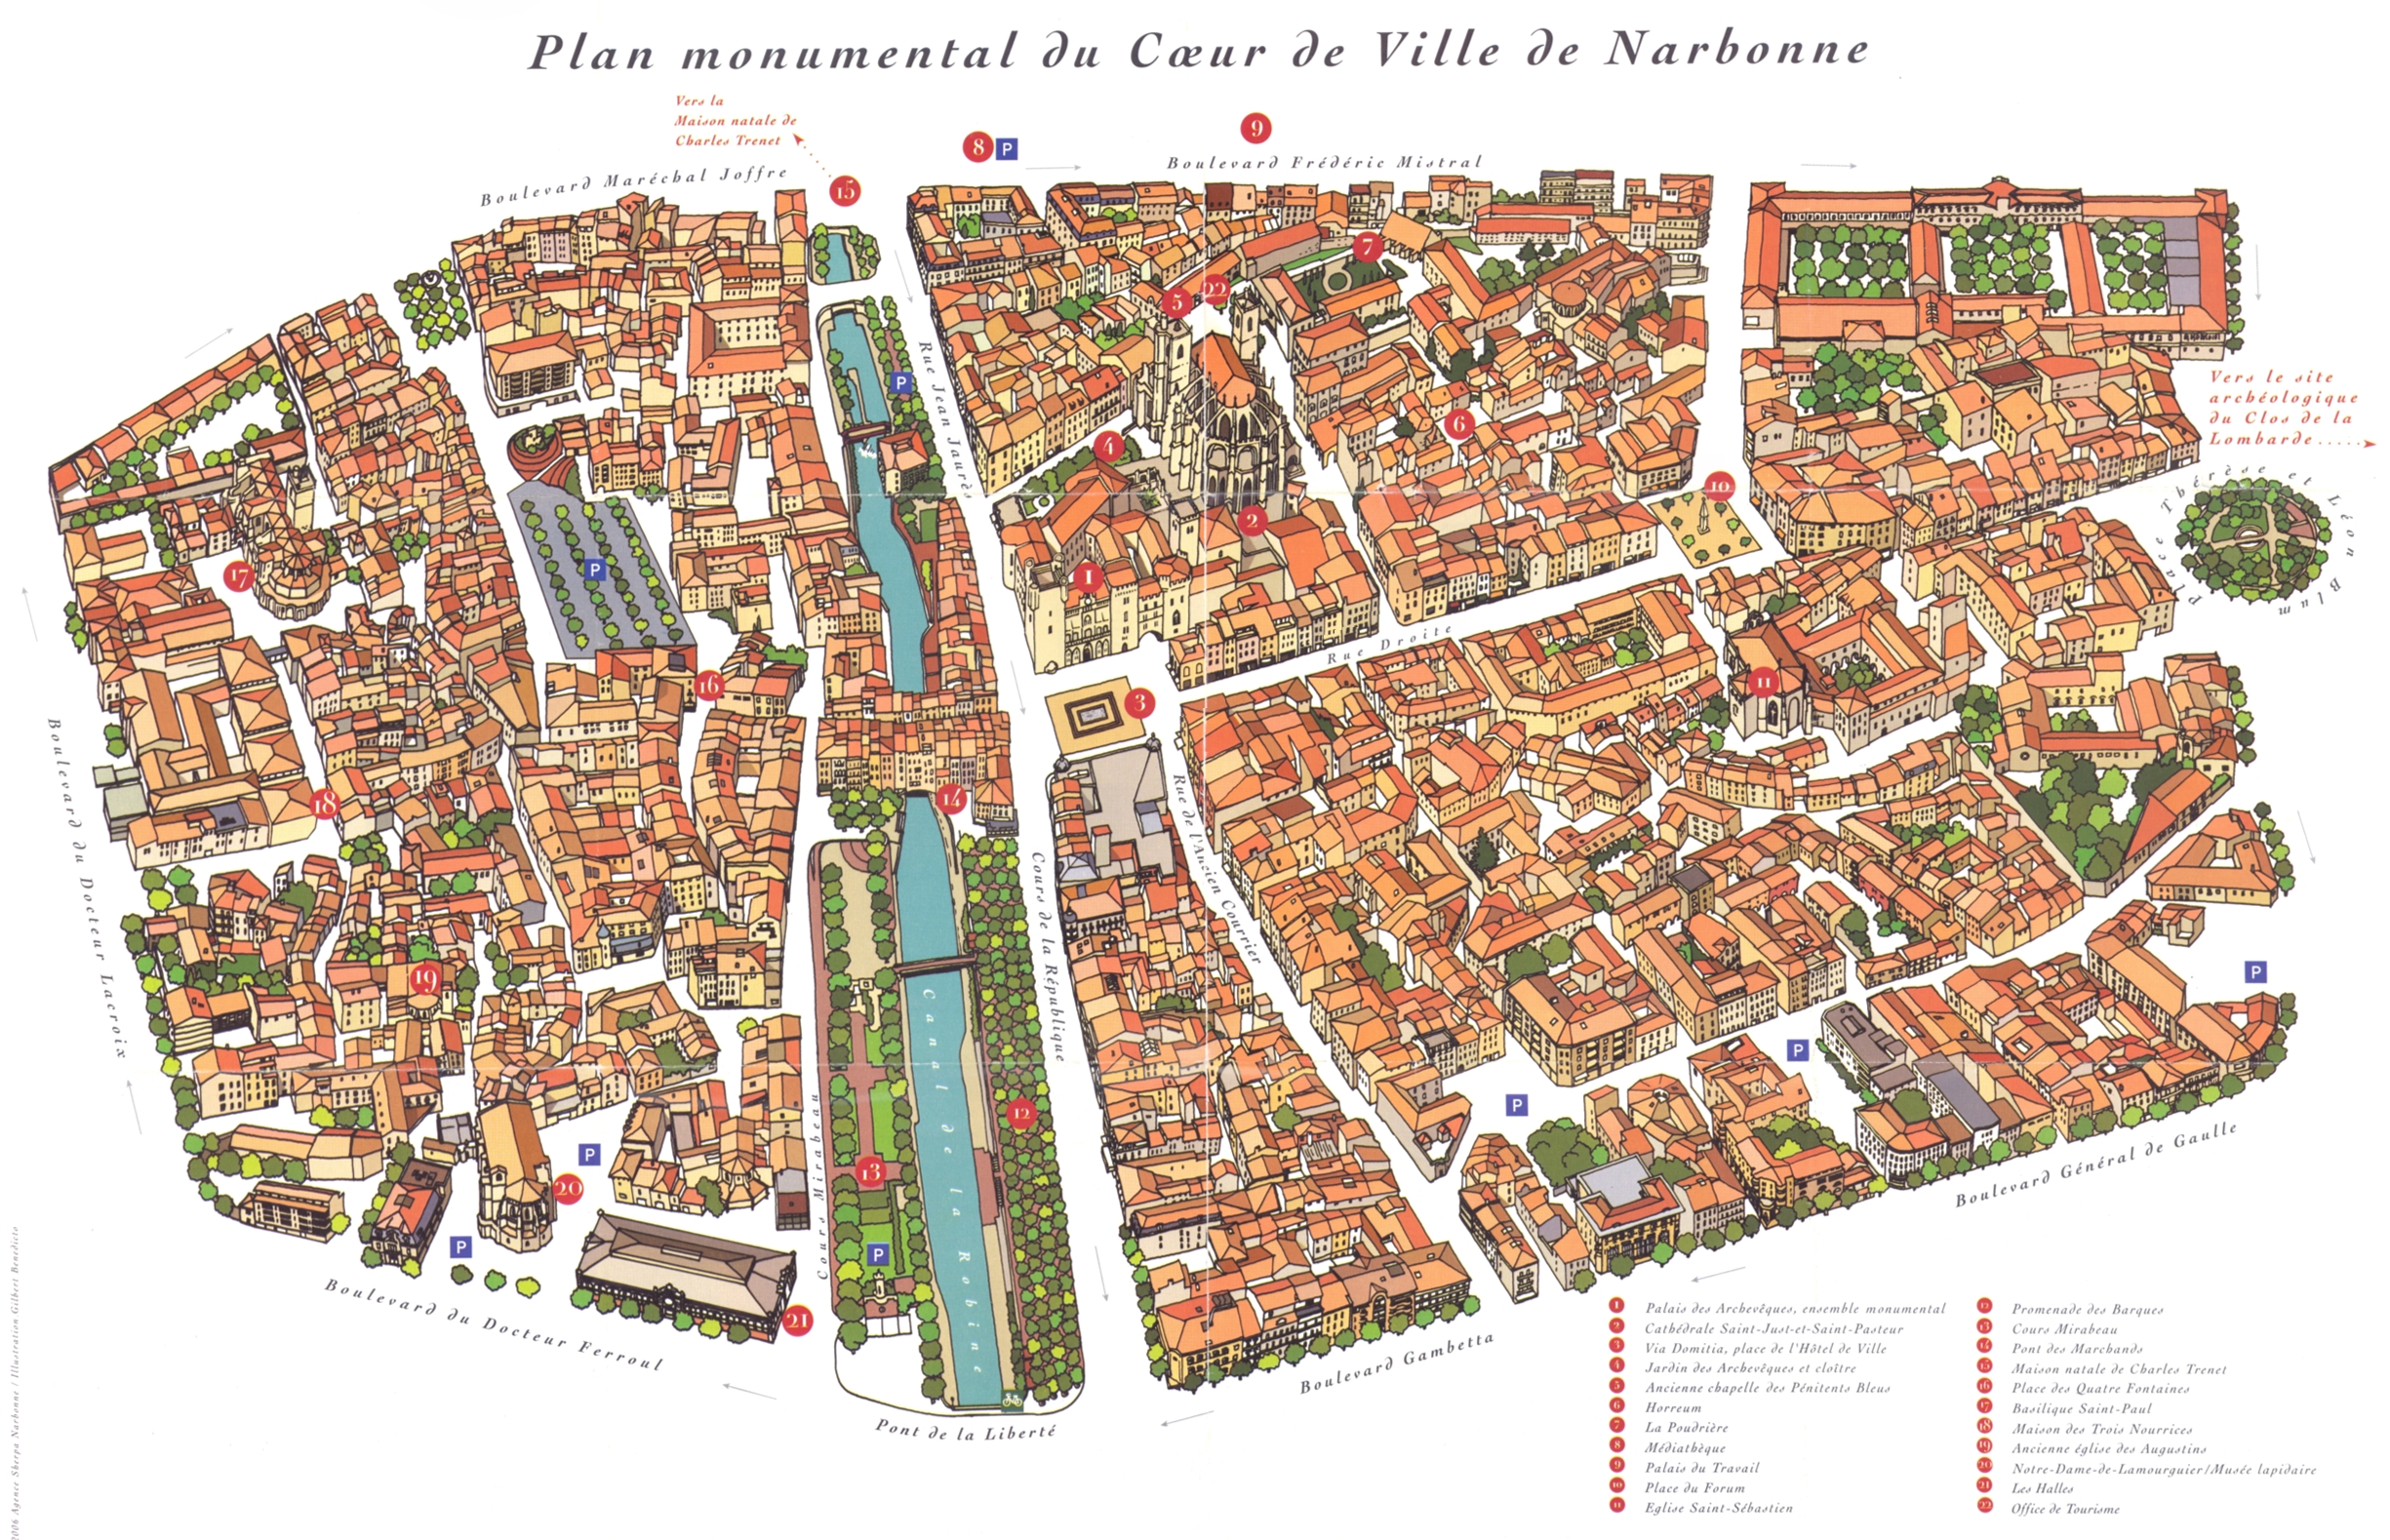 map of Narbonne, the canal cutting through the center of town